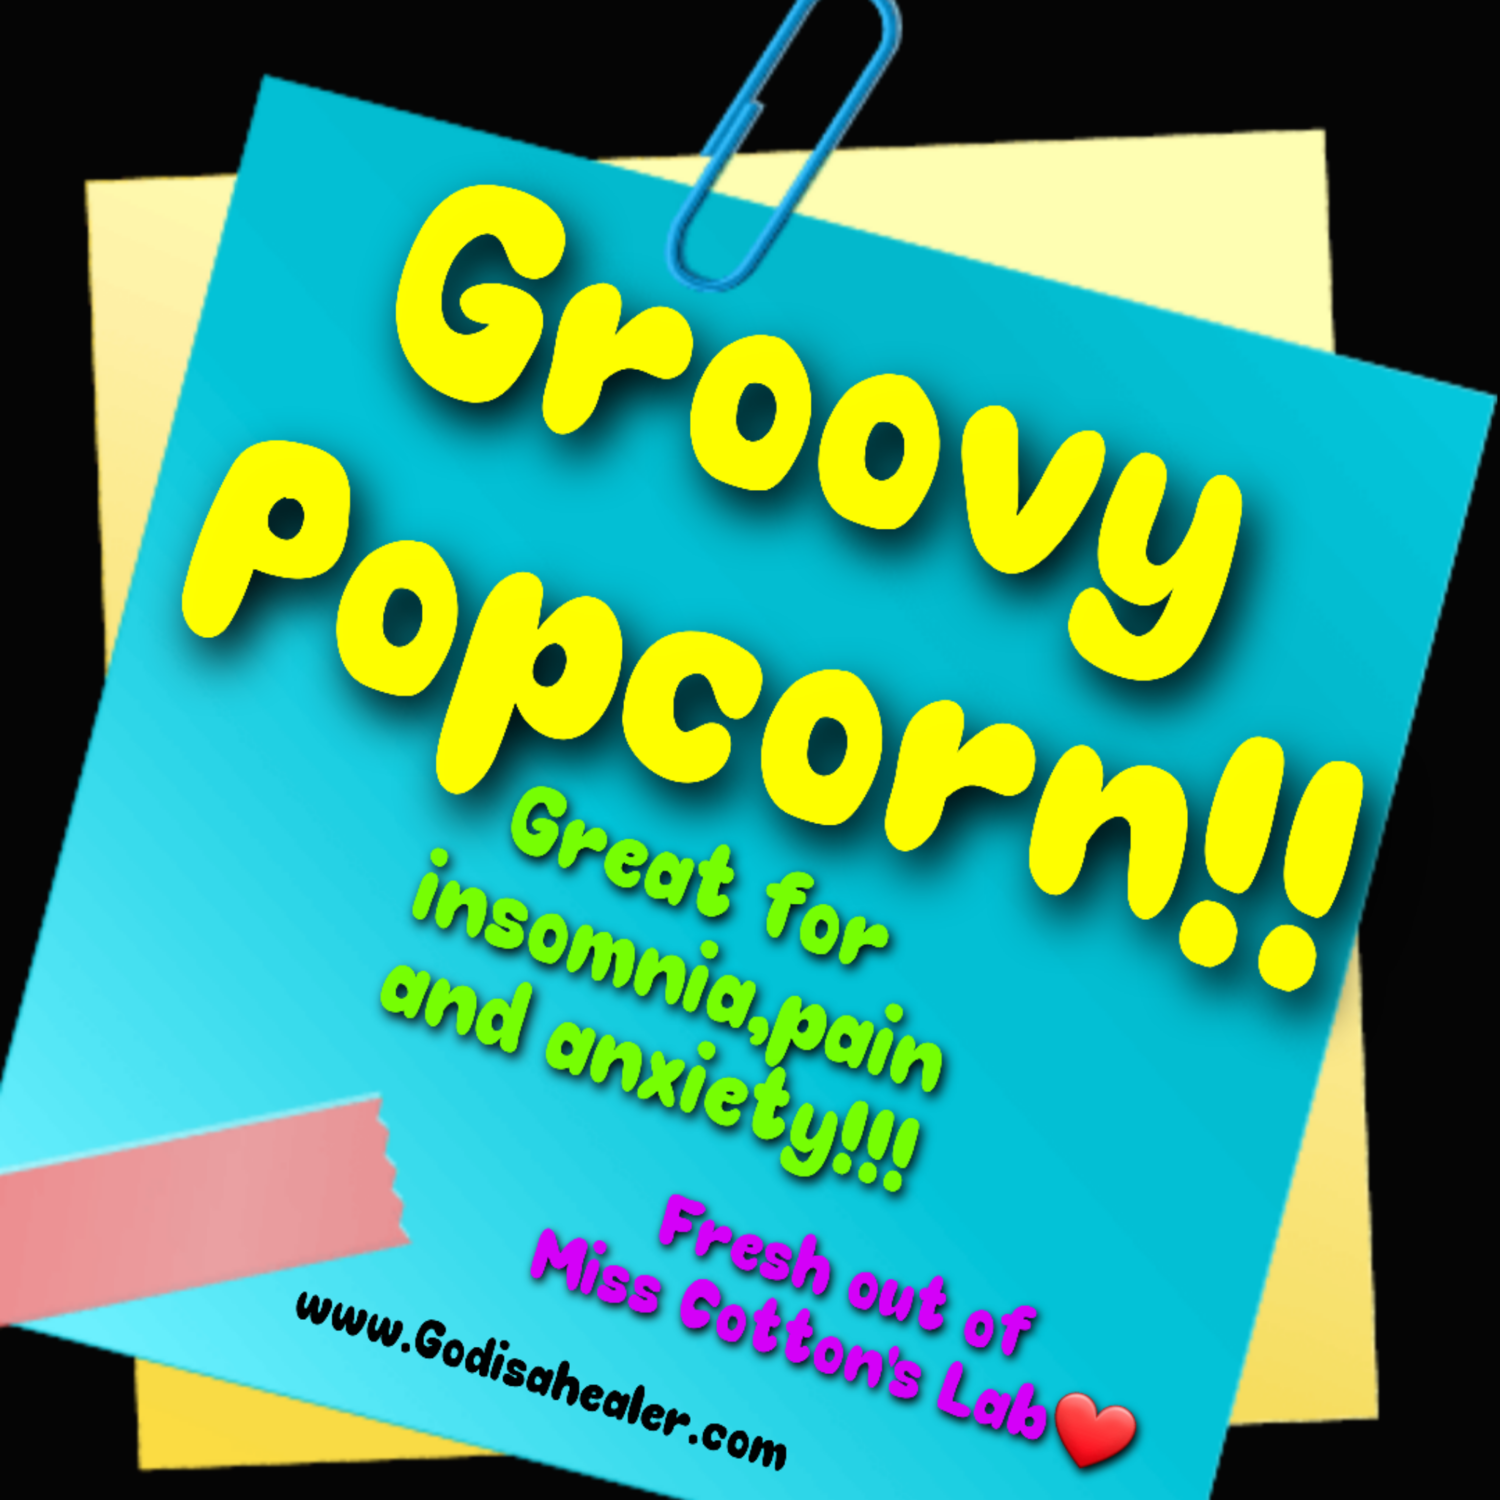 Eddie Bull's Medibles  Groovy Caramel and Cheddar Anti Anxiety Popcorn ( very high Cbd content!)